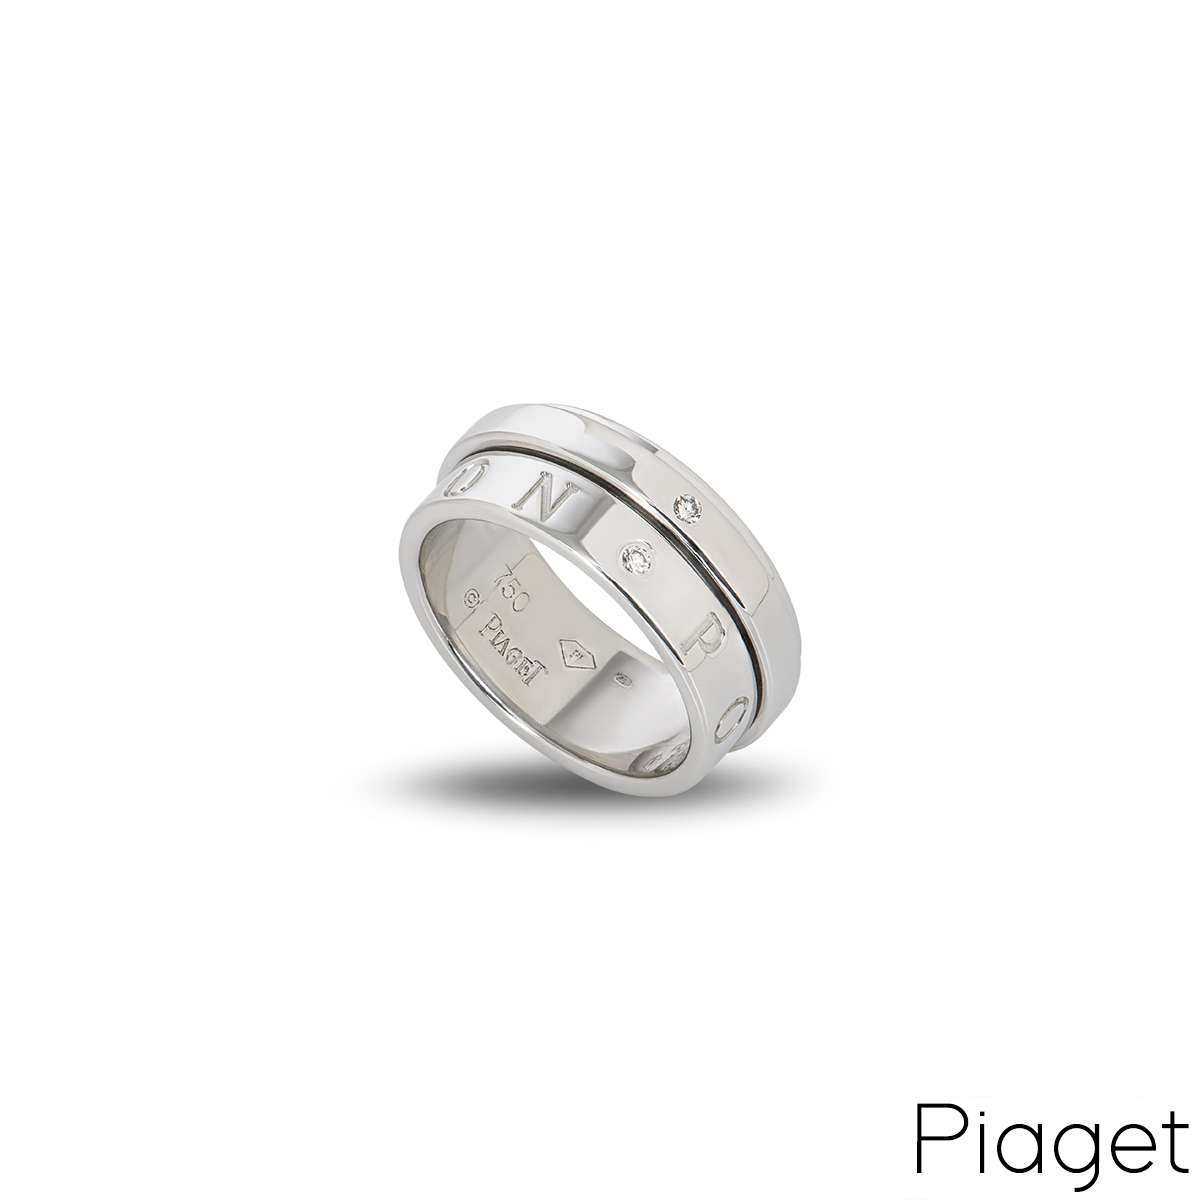 Piaget 18k White Gold Diamond Eccentric Possession Ring B&P G34PX253